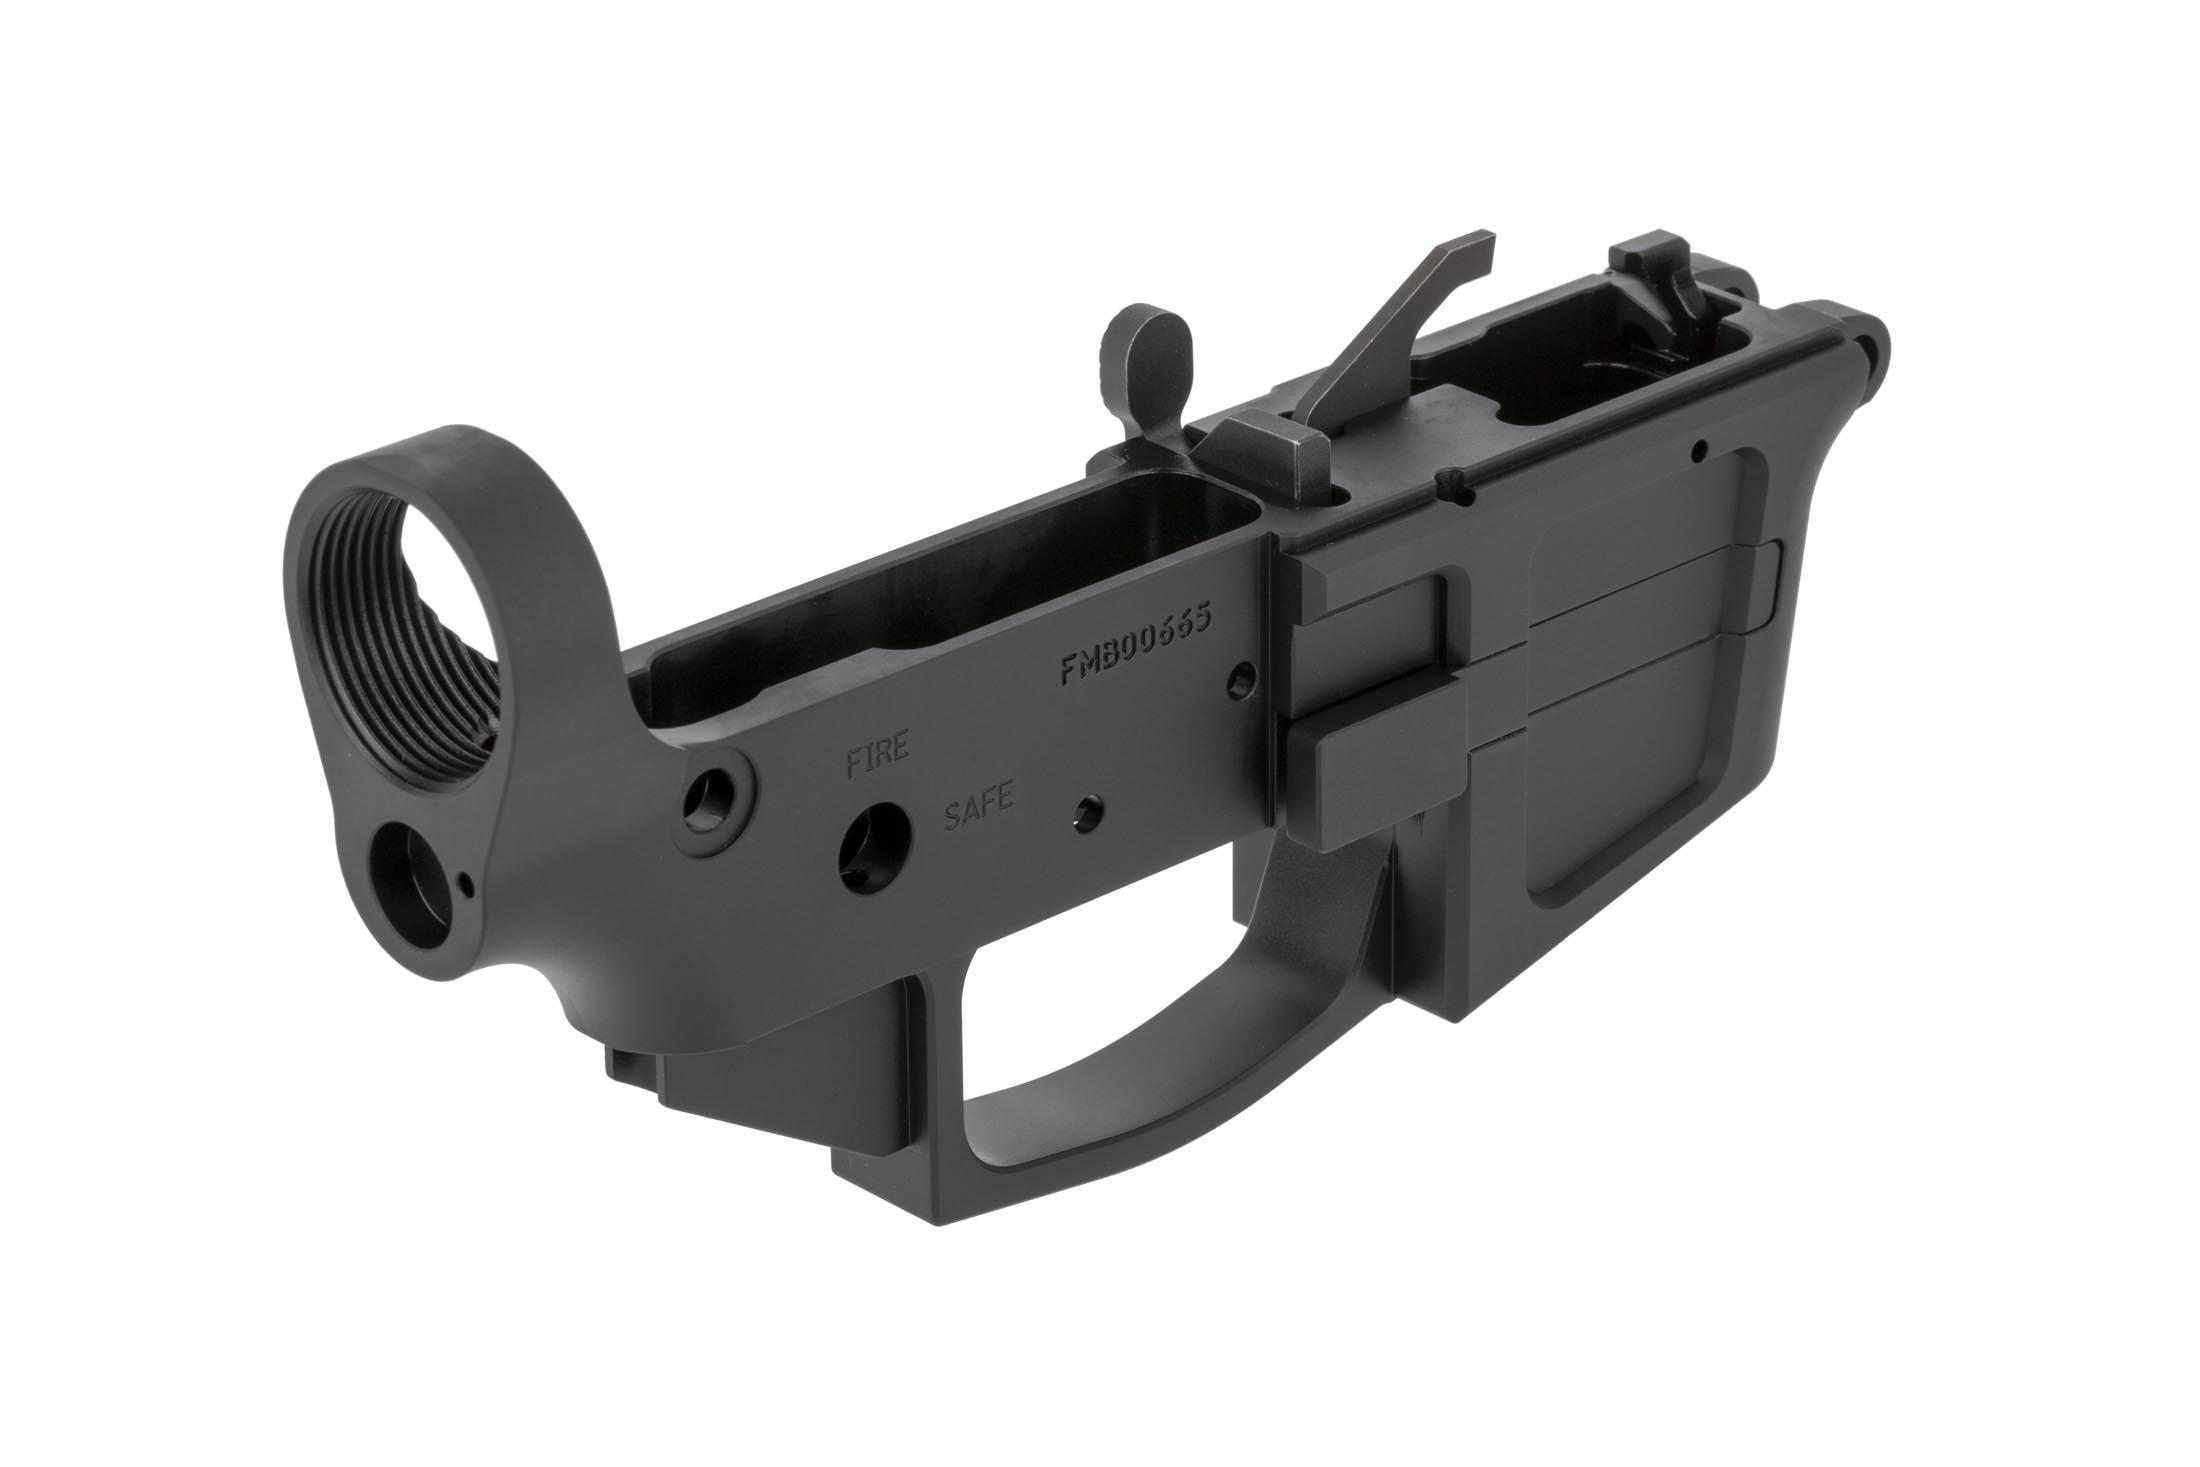 FM Products stripped billet 9mm AR15 lower receiver features a receiver tension screw for optimal receiver fit